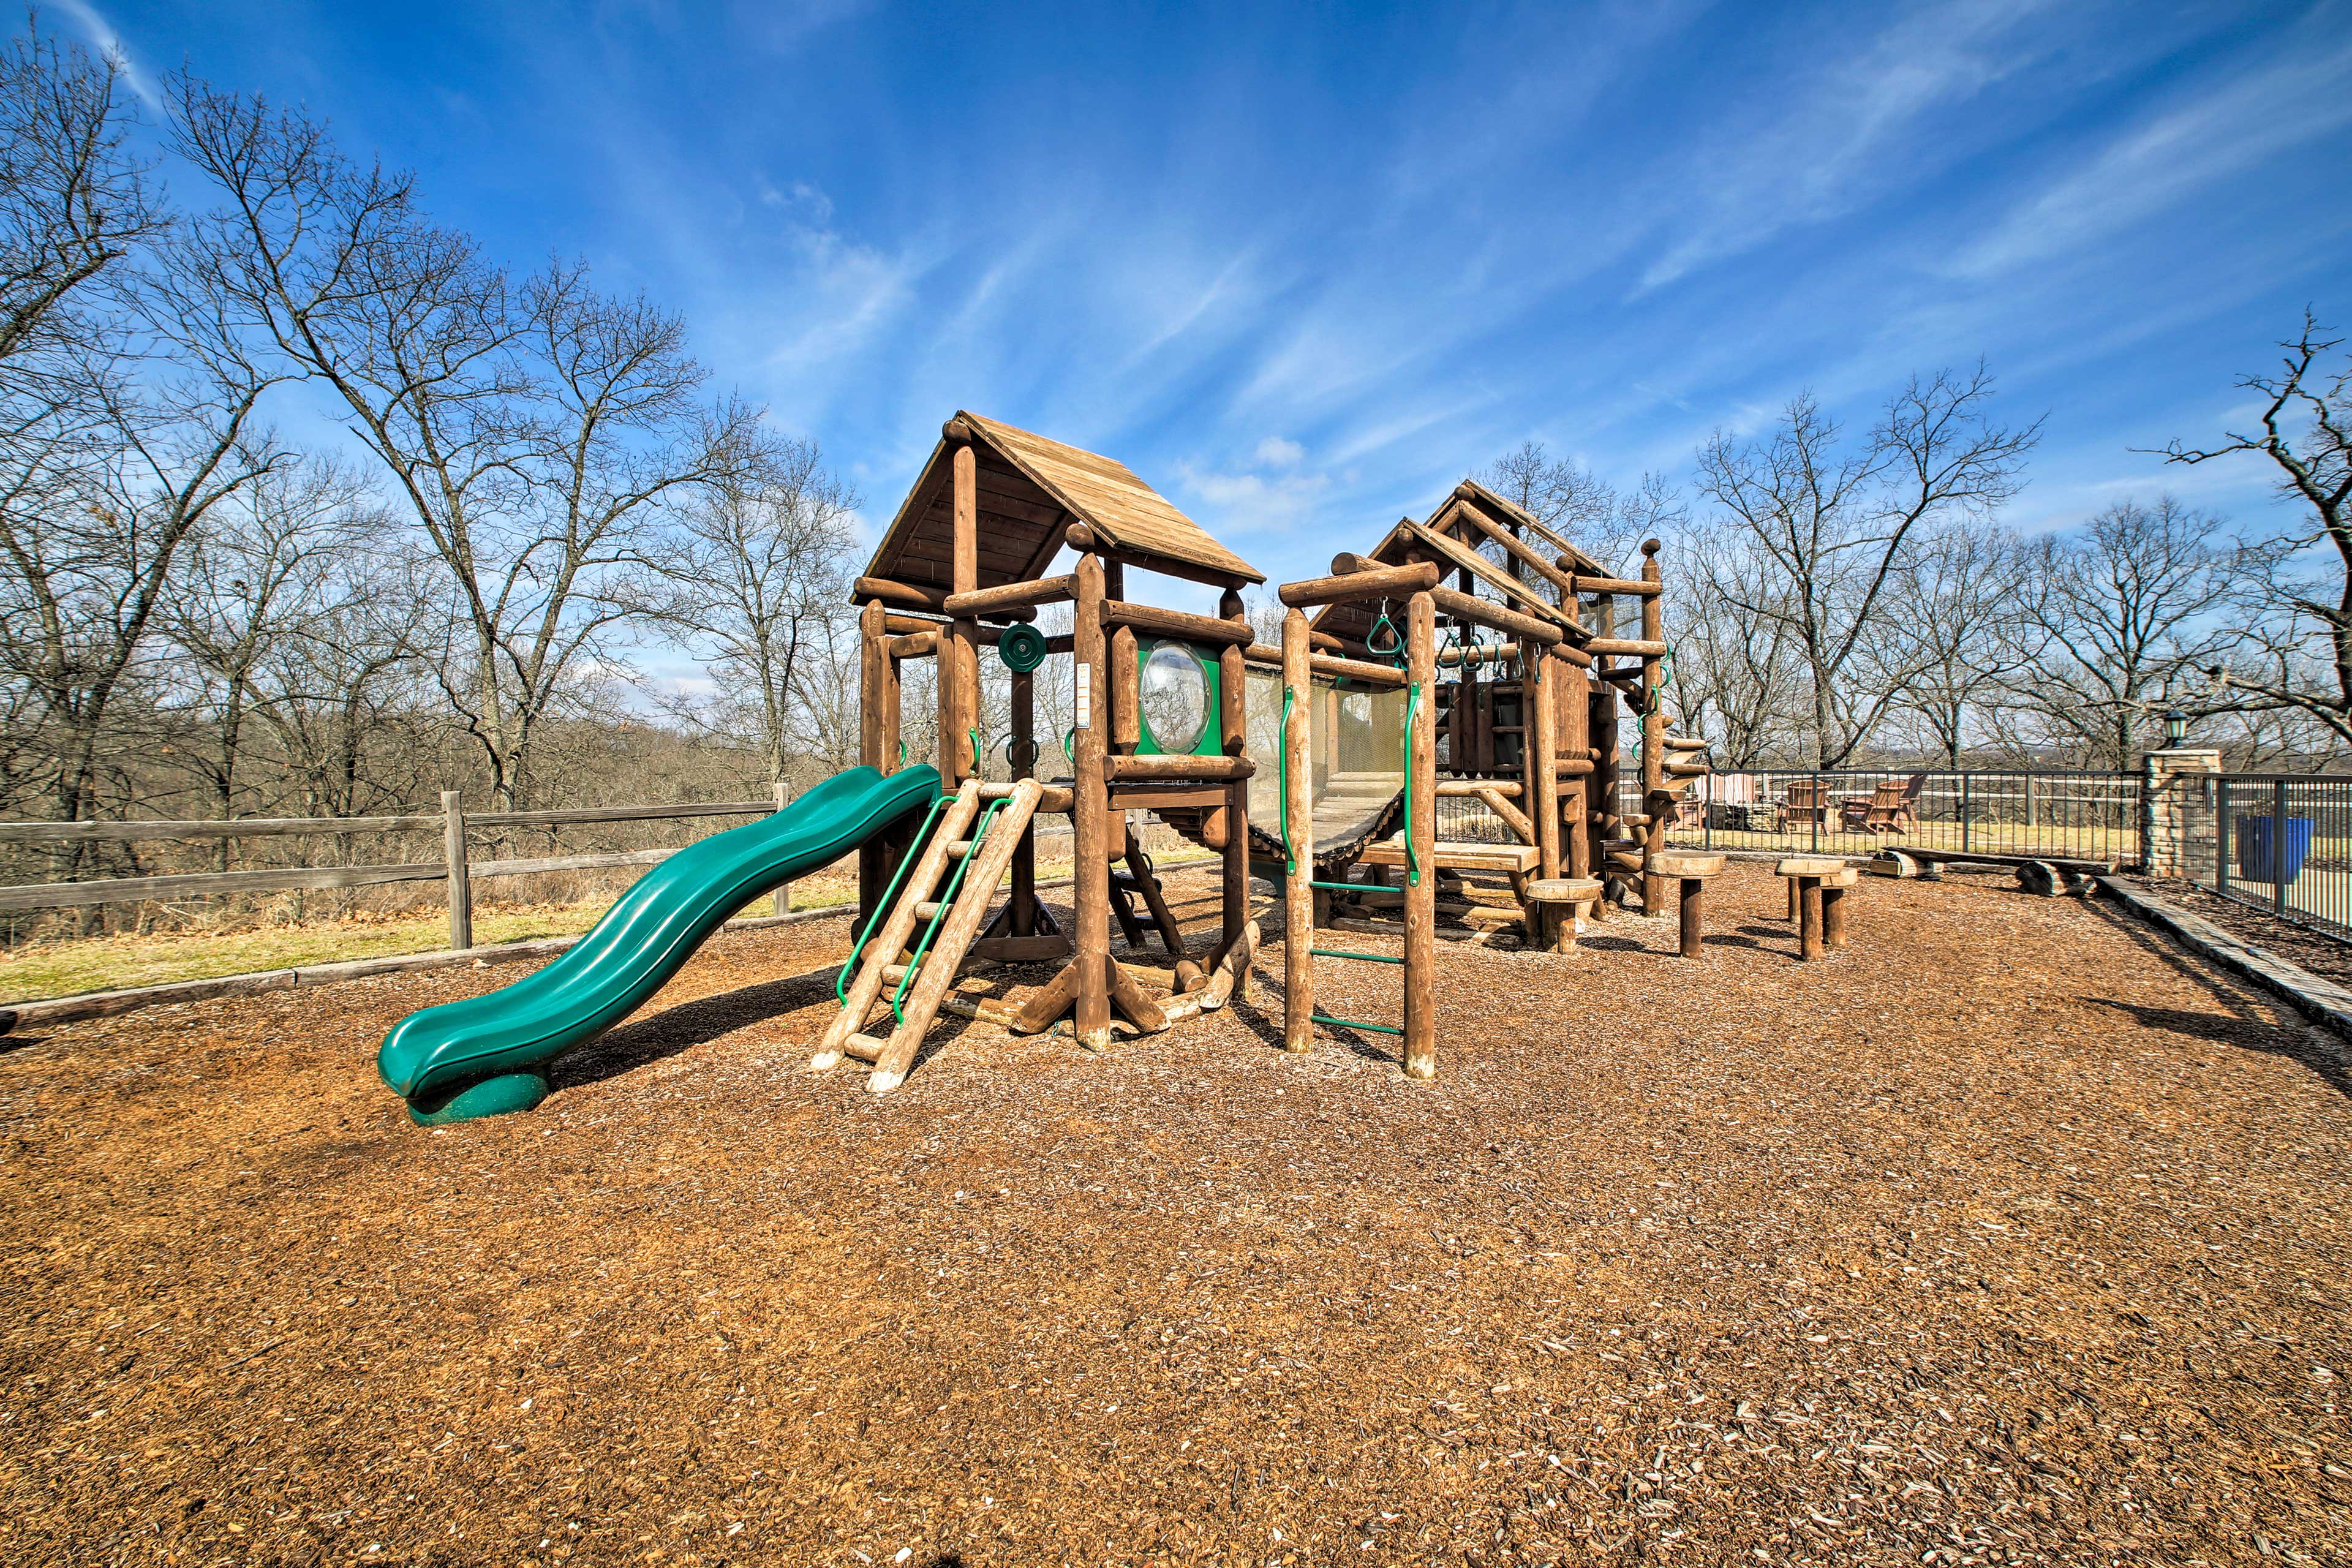 Kids will love clambering the rustic-styled playground right near the cabin.